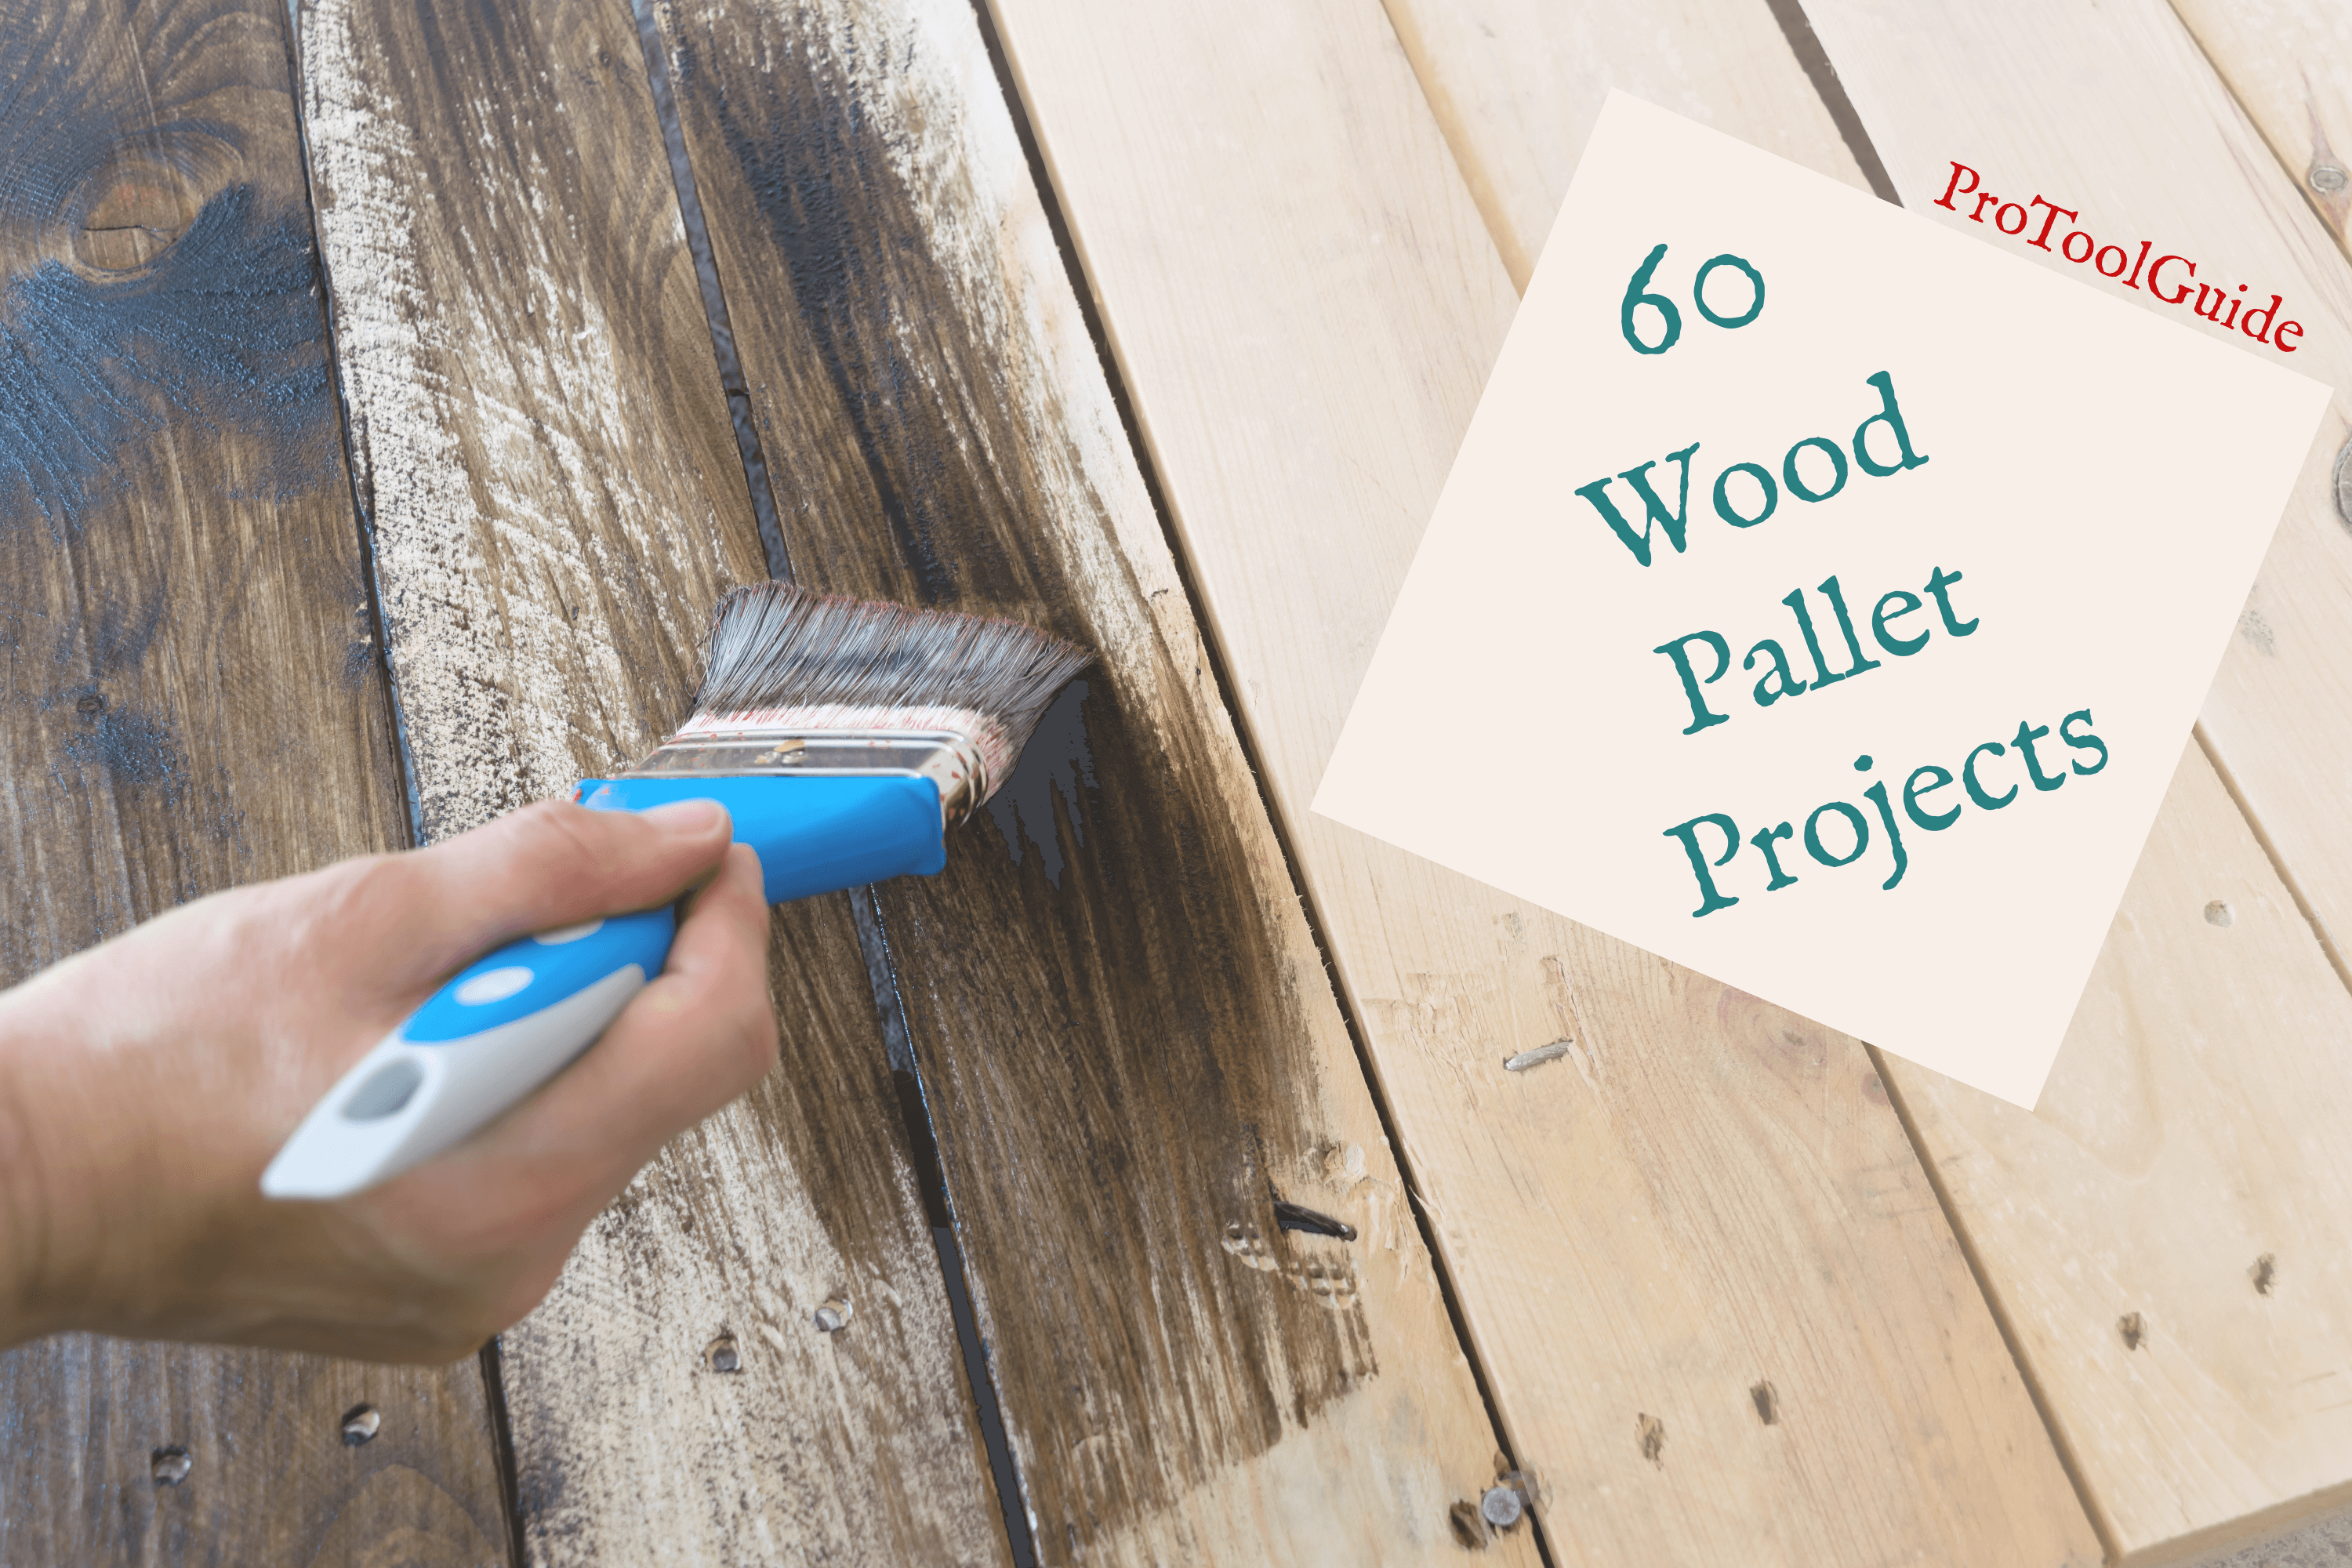 60 Diy Wood Pallet Projects For Your Home Improvement Needs